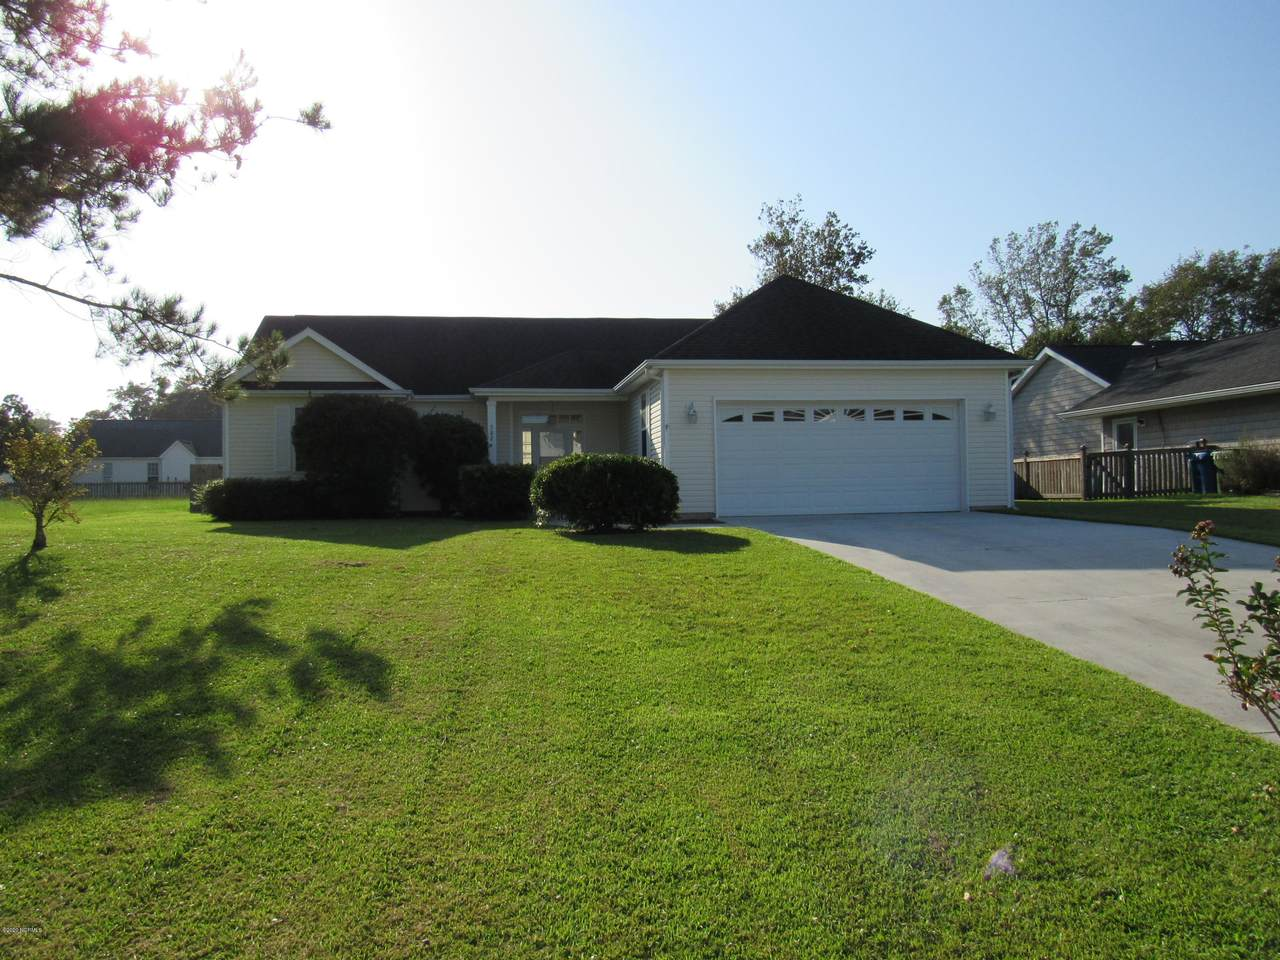 302 Whirl Away Boulevard - Photo 1